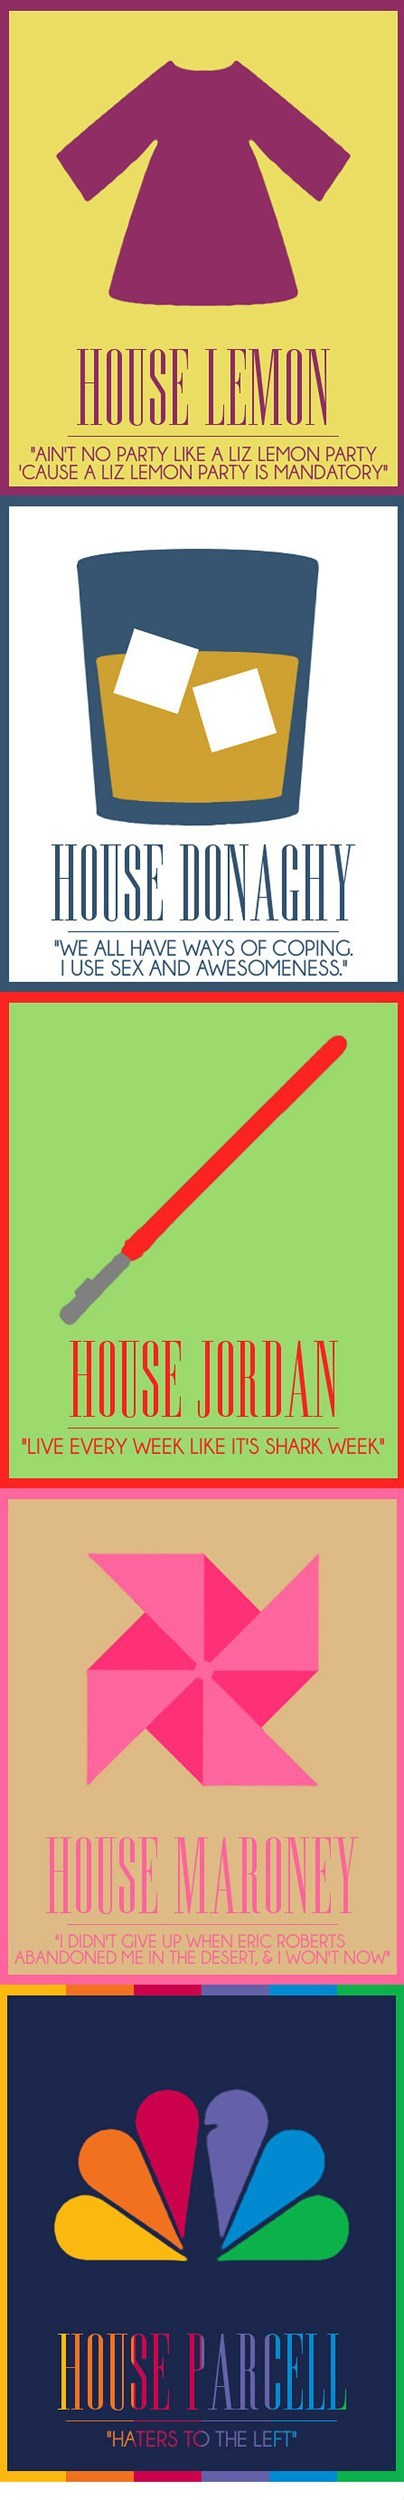 'Game of Thrones'-Inspired Houses of '30 Rock'